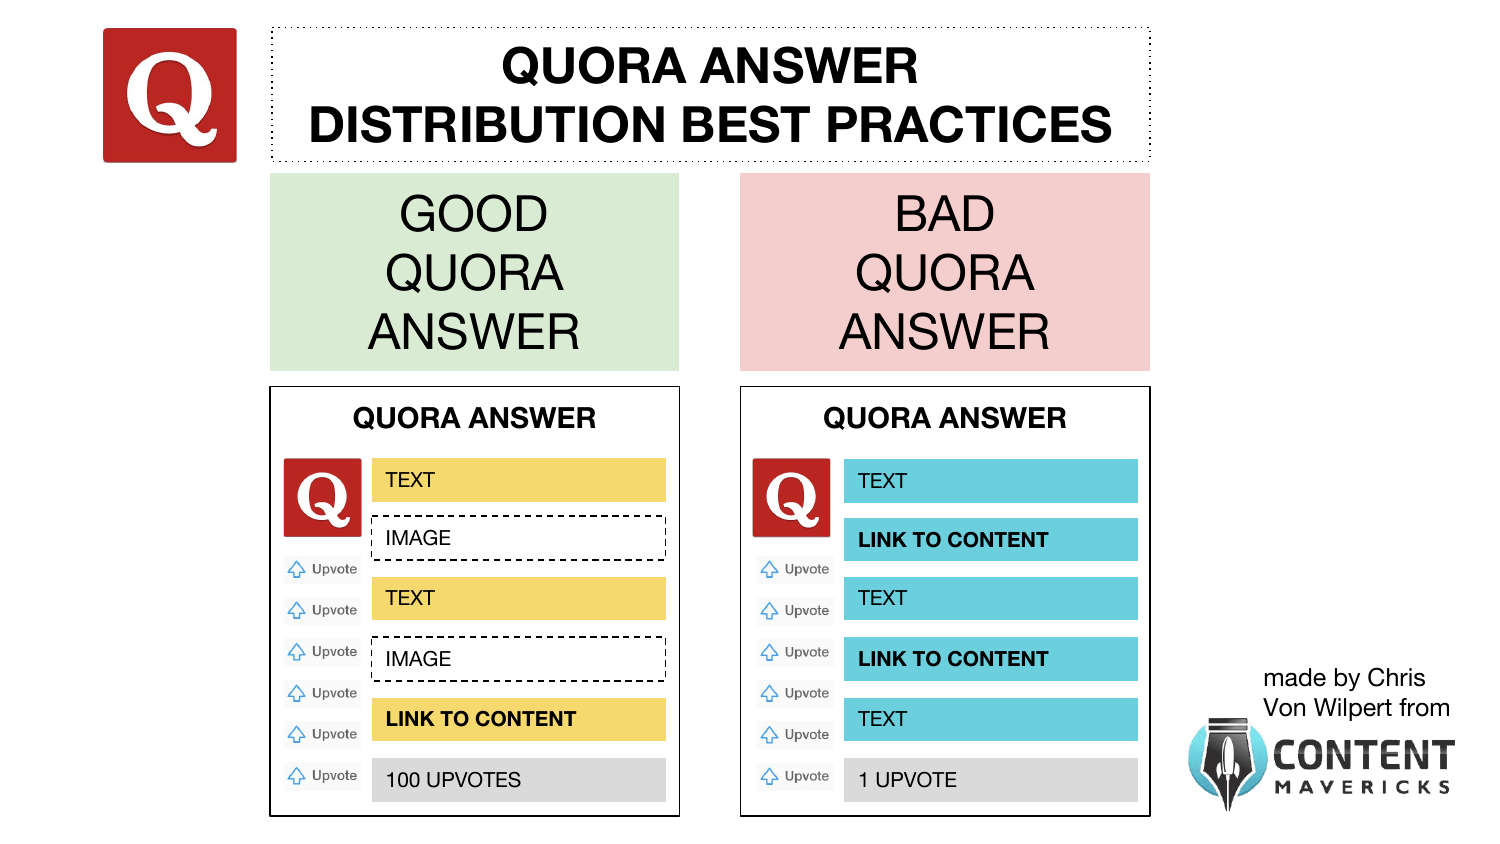 quora answer content distribution best practices image